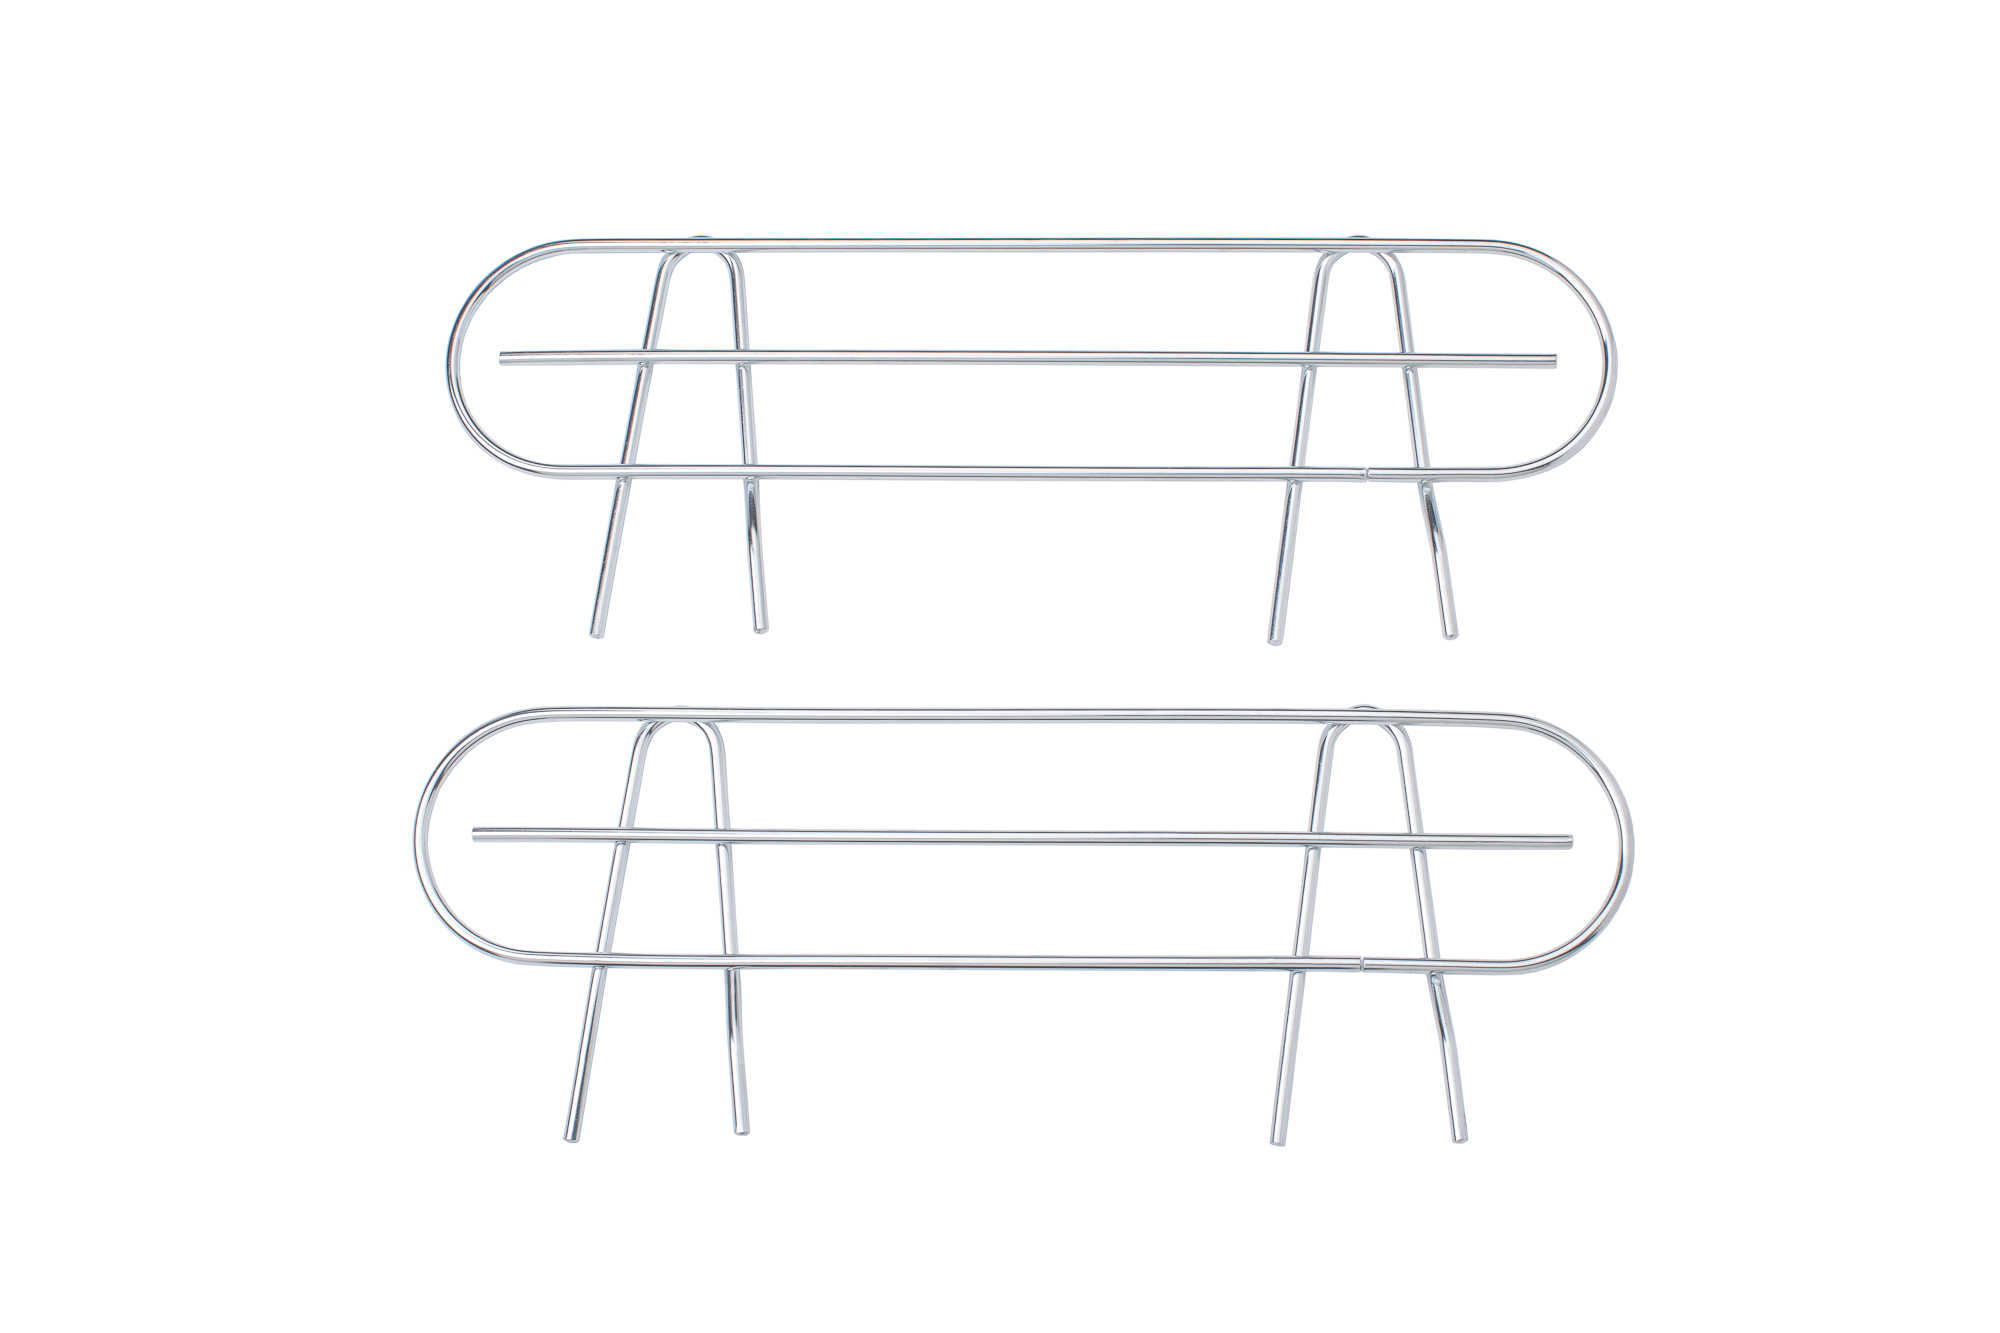 HSS Wire Shelf Side Ledge, Fits on 18' deep shelf, Chrome Color, 2-PACK